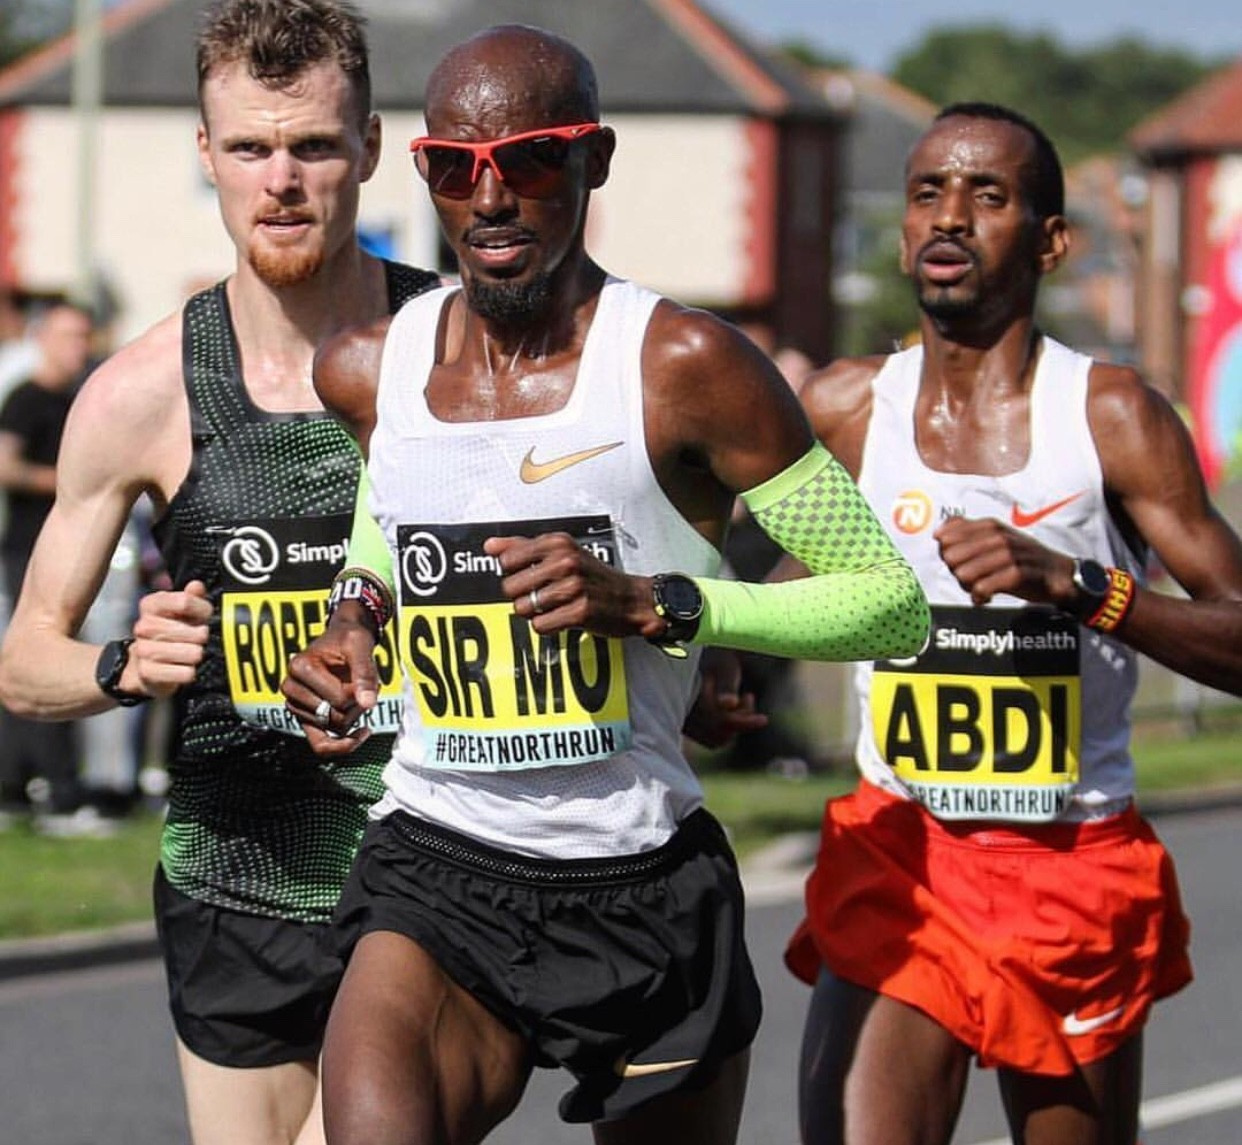 Jake Robertson has been training hard in Kenya and is focused on running very fast at Canada's Waterfront Marathon Oct 21